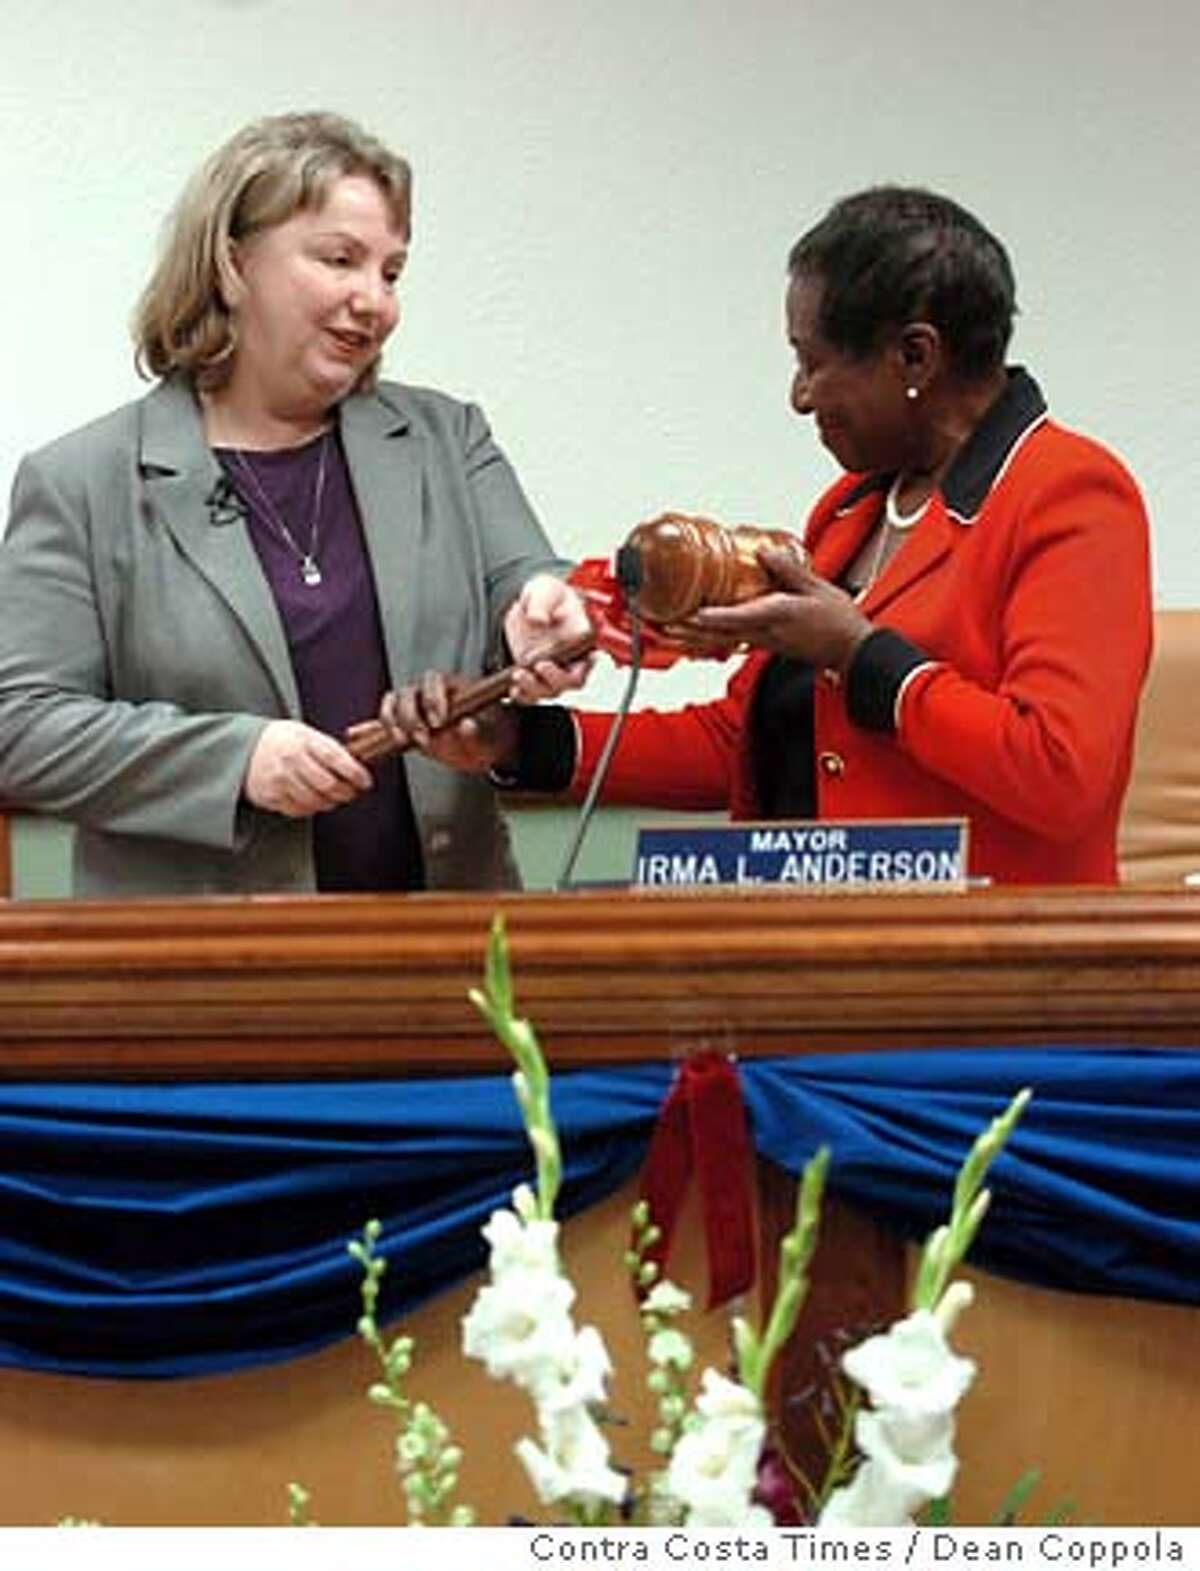 Mayor-elect Gayle McLaughlin, left, is handed a ceremonial gavel by outgoing Mayor Irma Anderson during swearing-in ceremonies at Richmond City Hall in Richmond, Calif. on Tuesday, Jan. 09, 2007. (AP Photo/Contra Costa Times, Dean Coppola) ** NO MAGS, , NO INTERNET, NO TV **